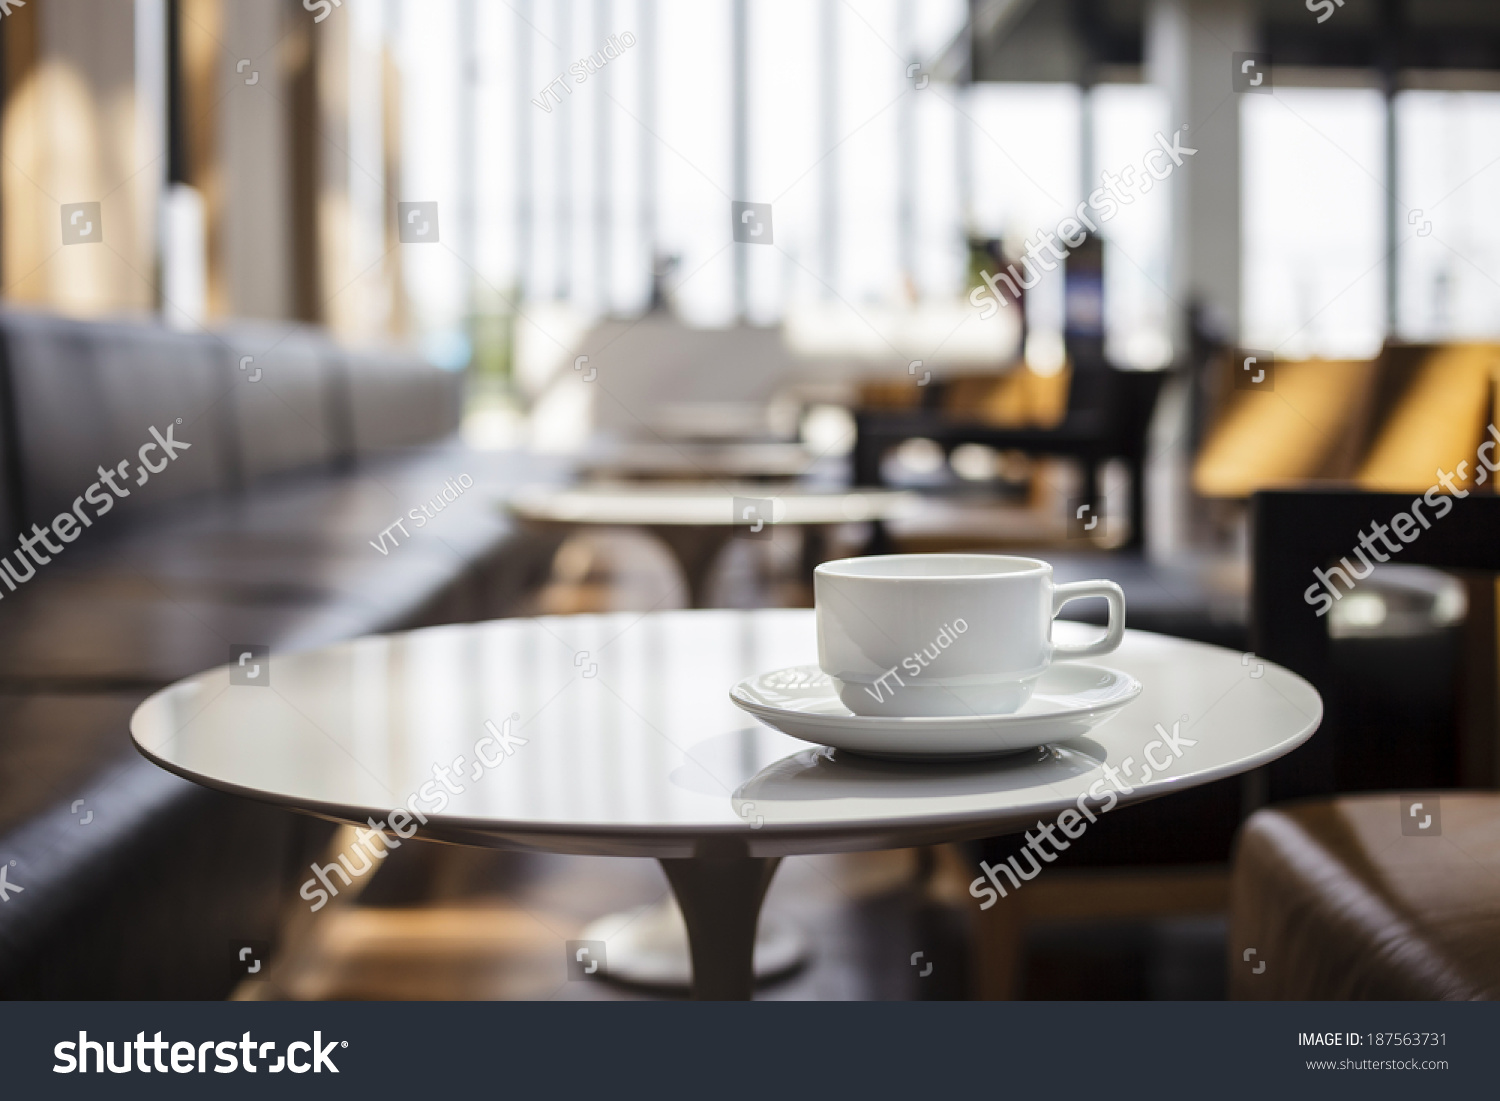 Coffee Shop Cafe Interior With Table Stock Photo 187563731 Shutterstock